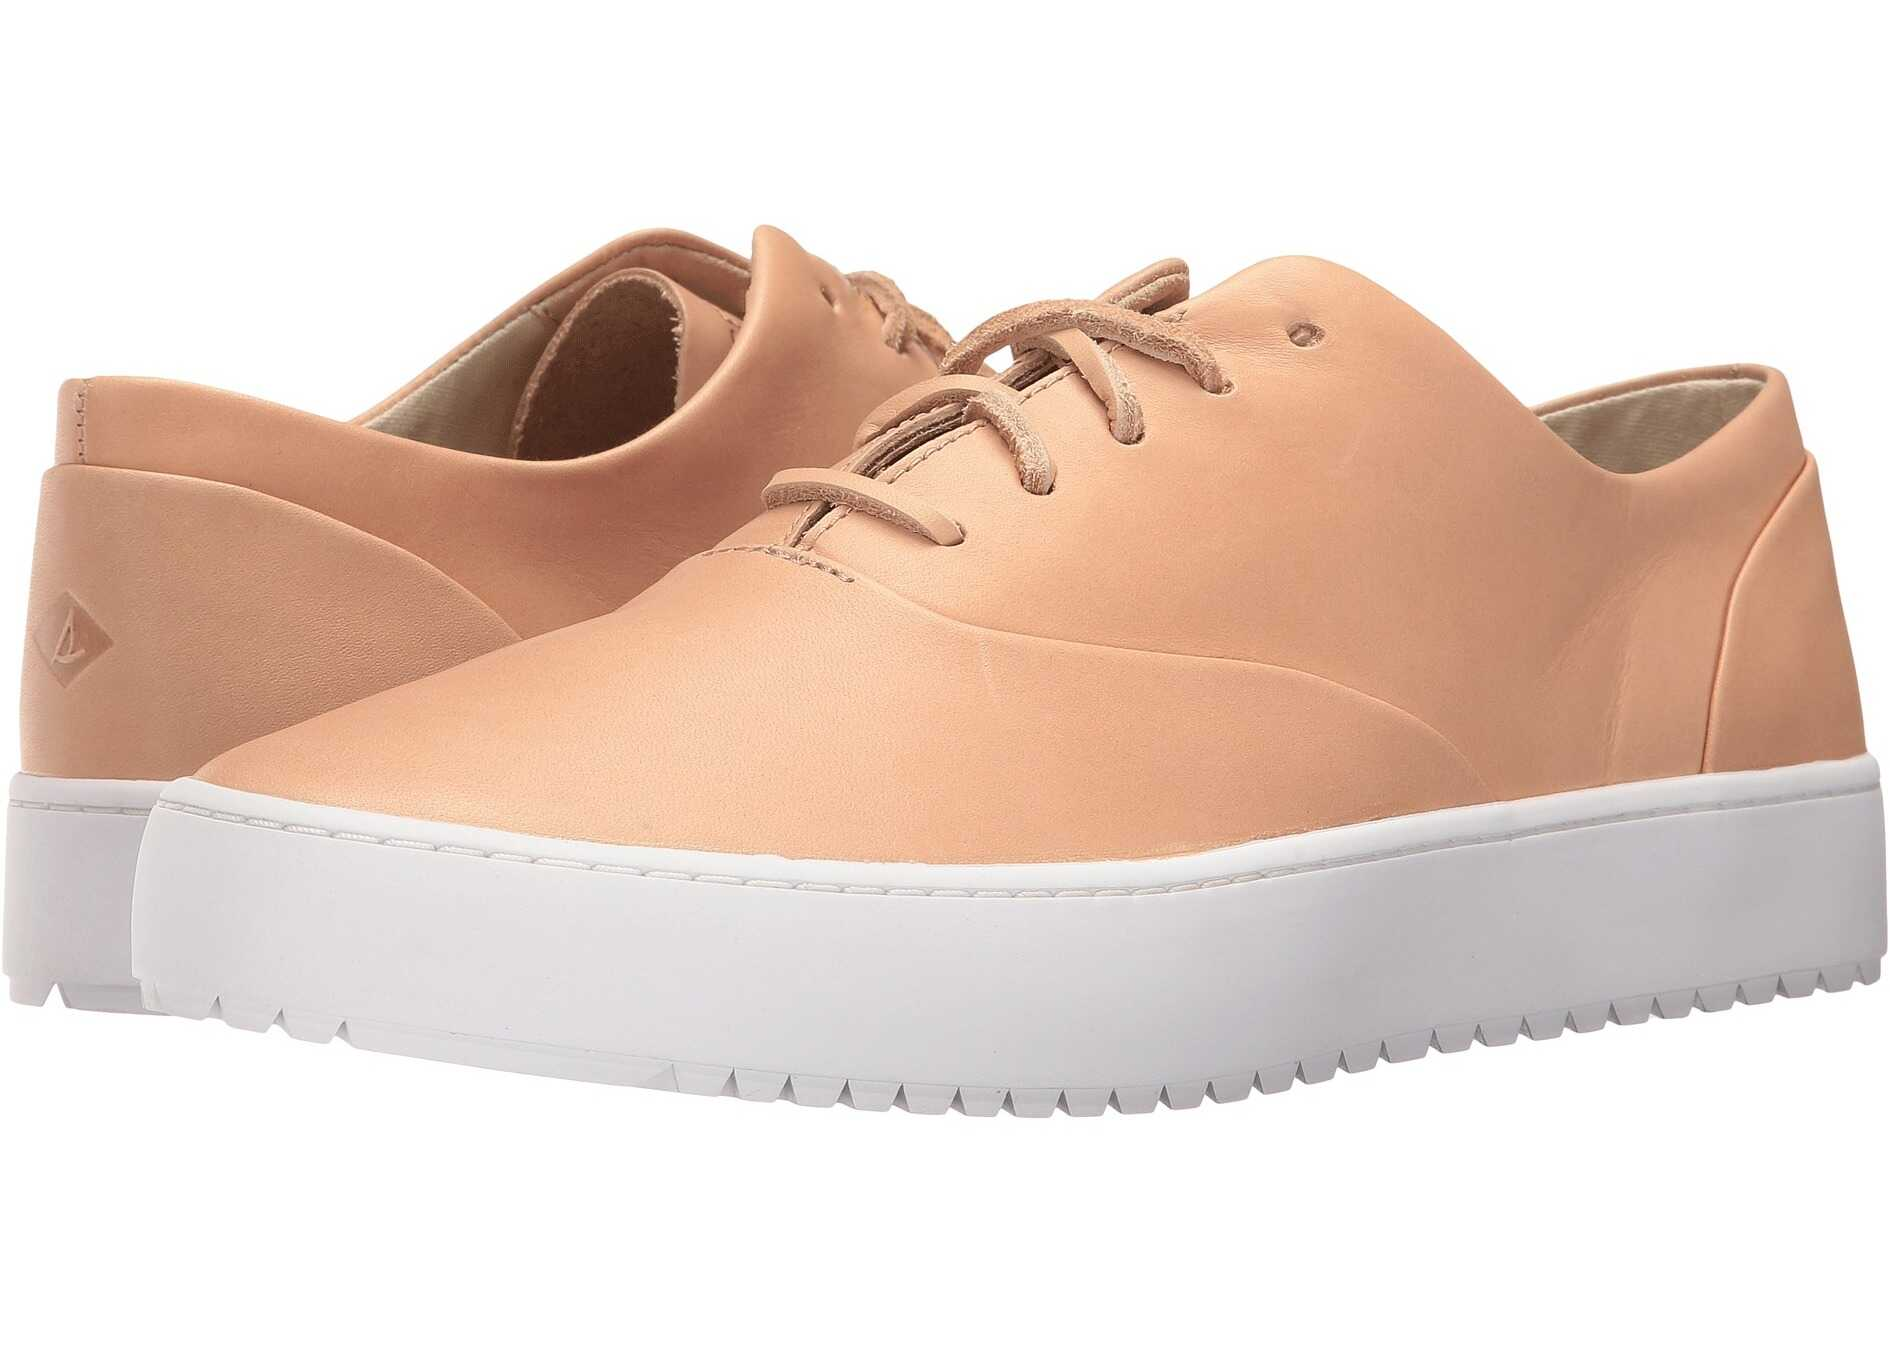 Sperry Top-Sider Endeavor CVO Leather Natural/Veg Tanned